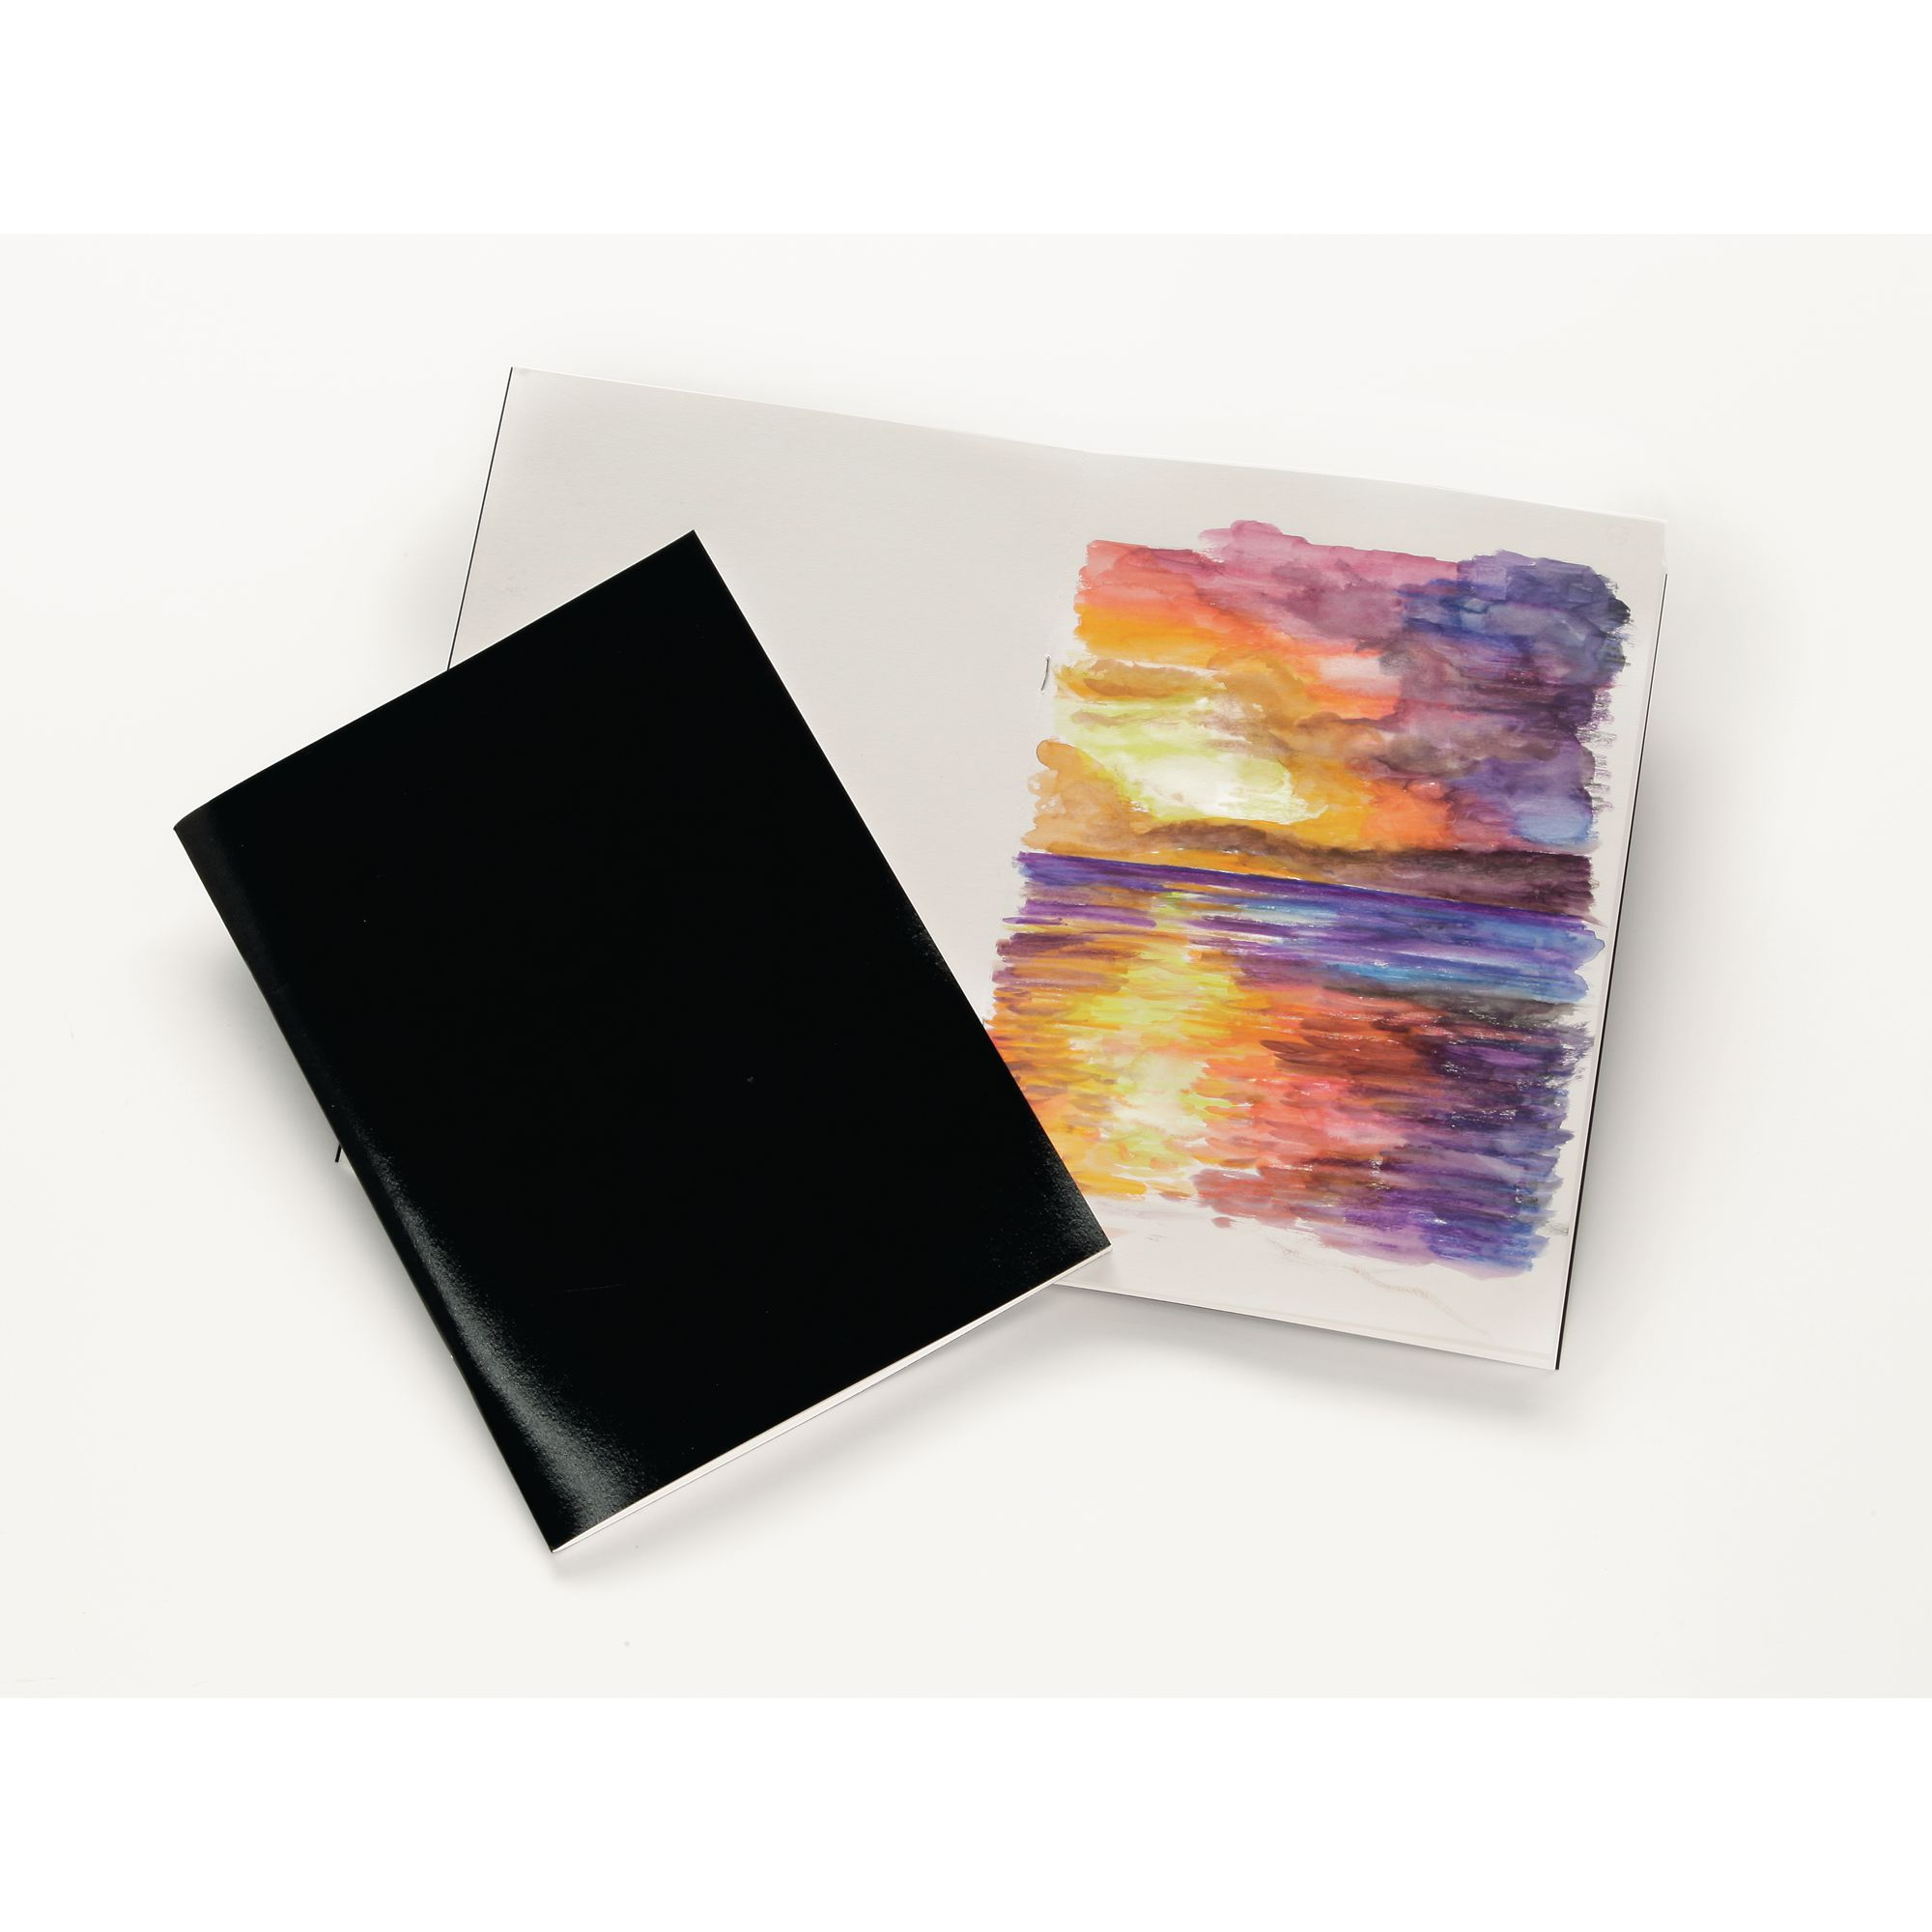 A4 Sketchbook Laminated Cover 40 Pages 140gsm Paper Acid Free Stapled School